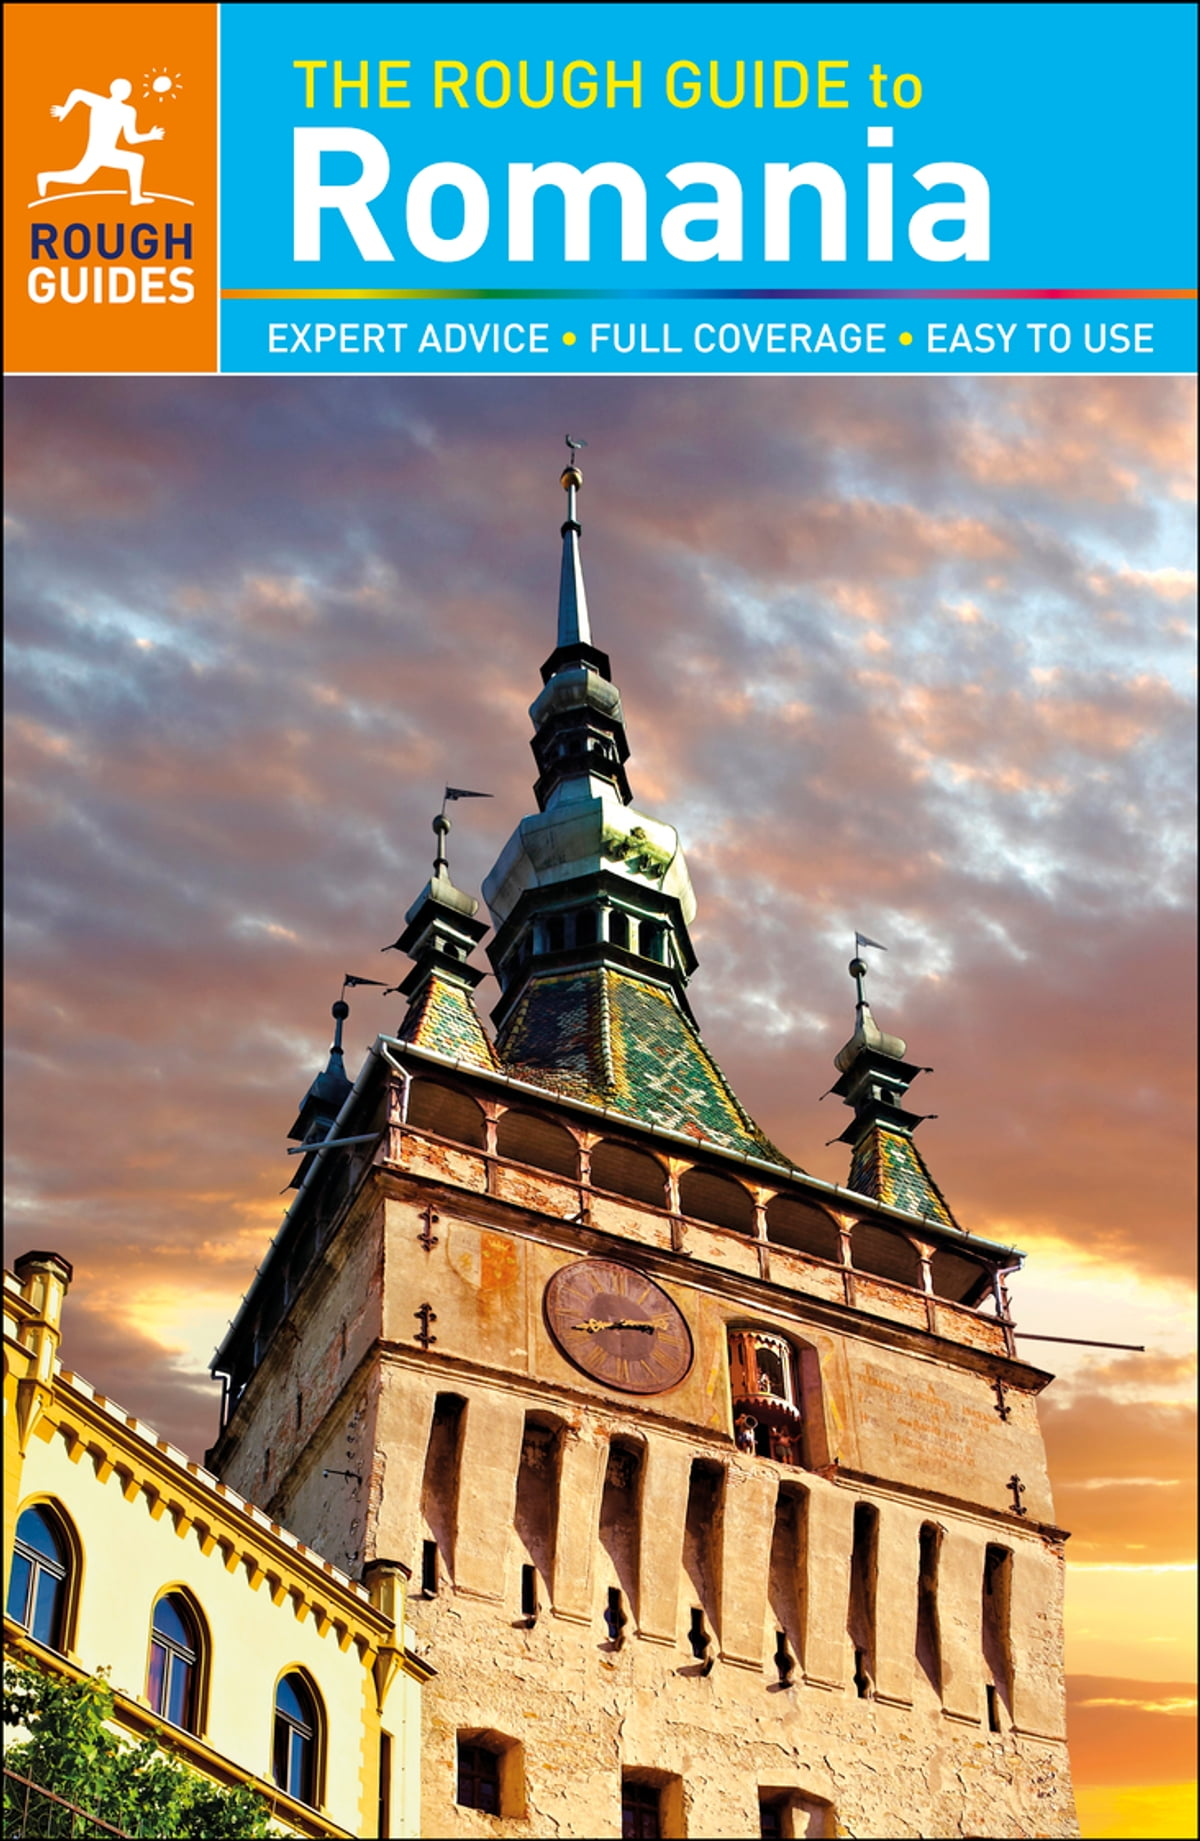 The rough guide to romania: rough guides: 9780241249451.